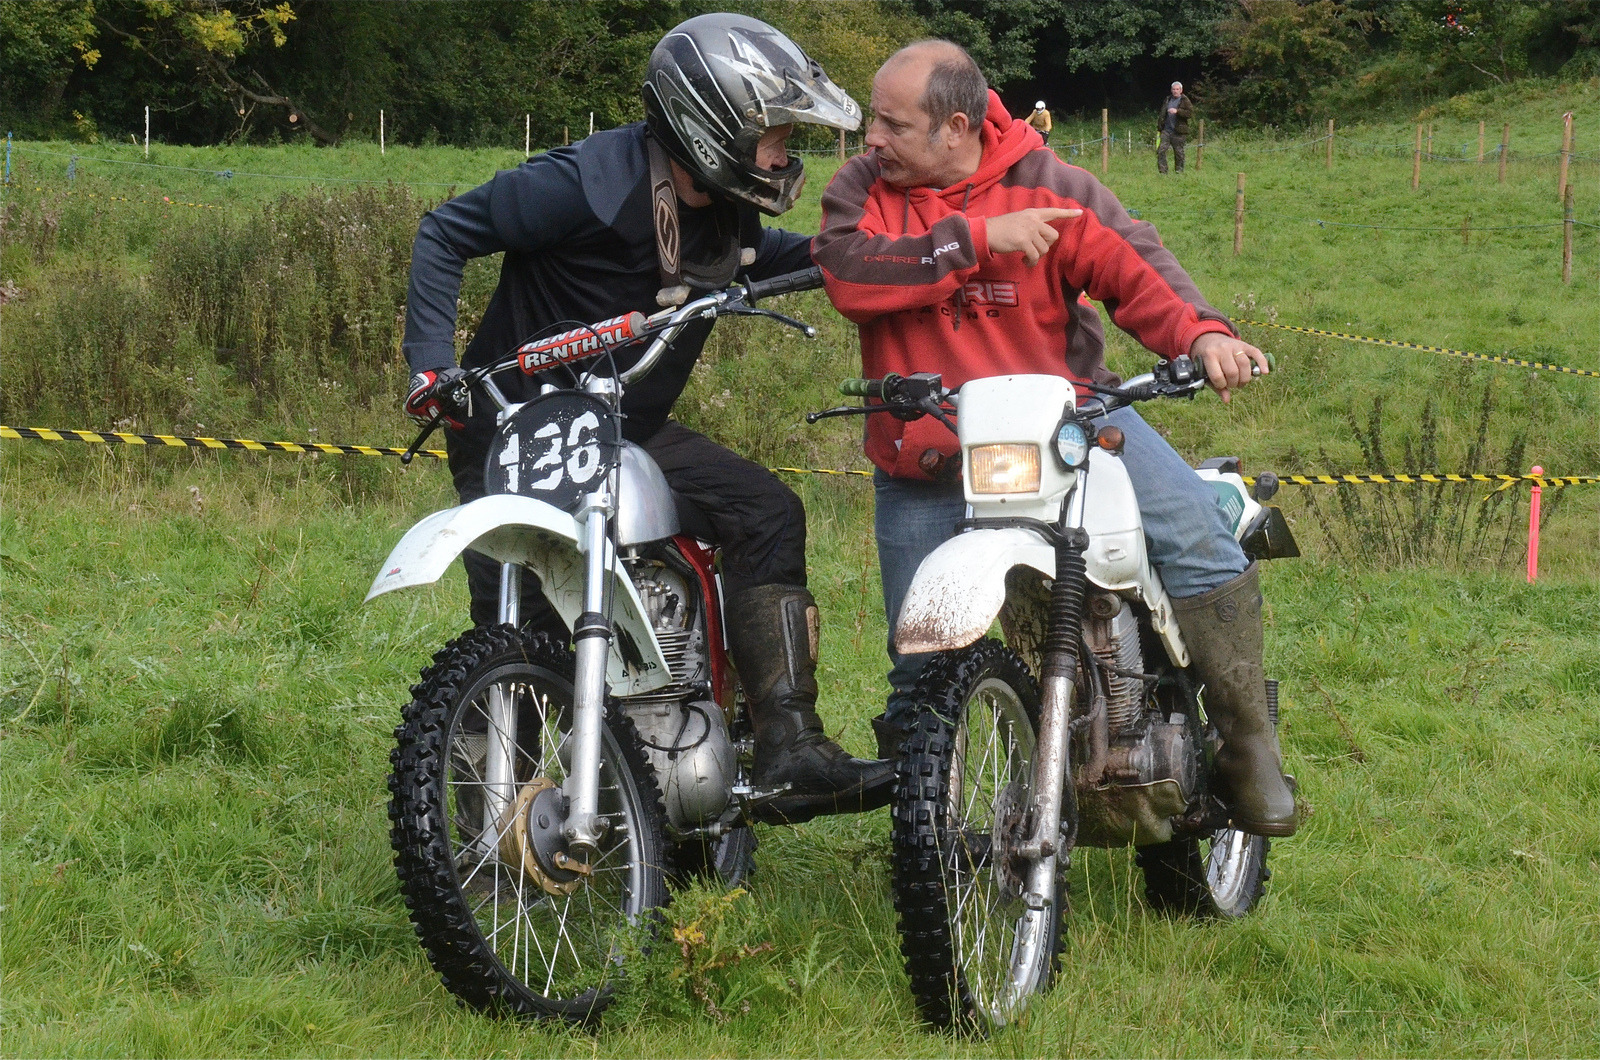 Llanthony Classic Scramble Photos September 2015 classicdirtbikerider.com..3